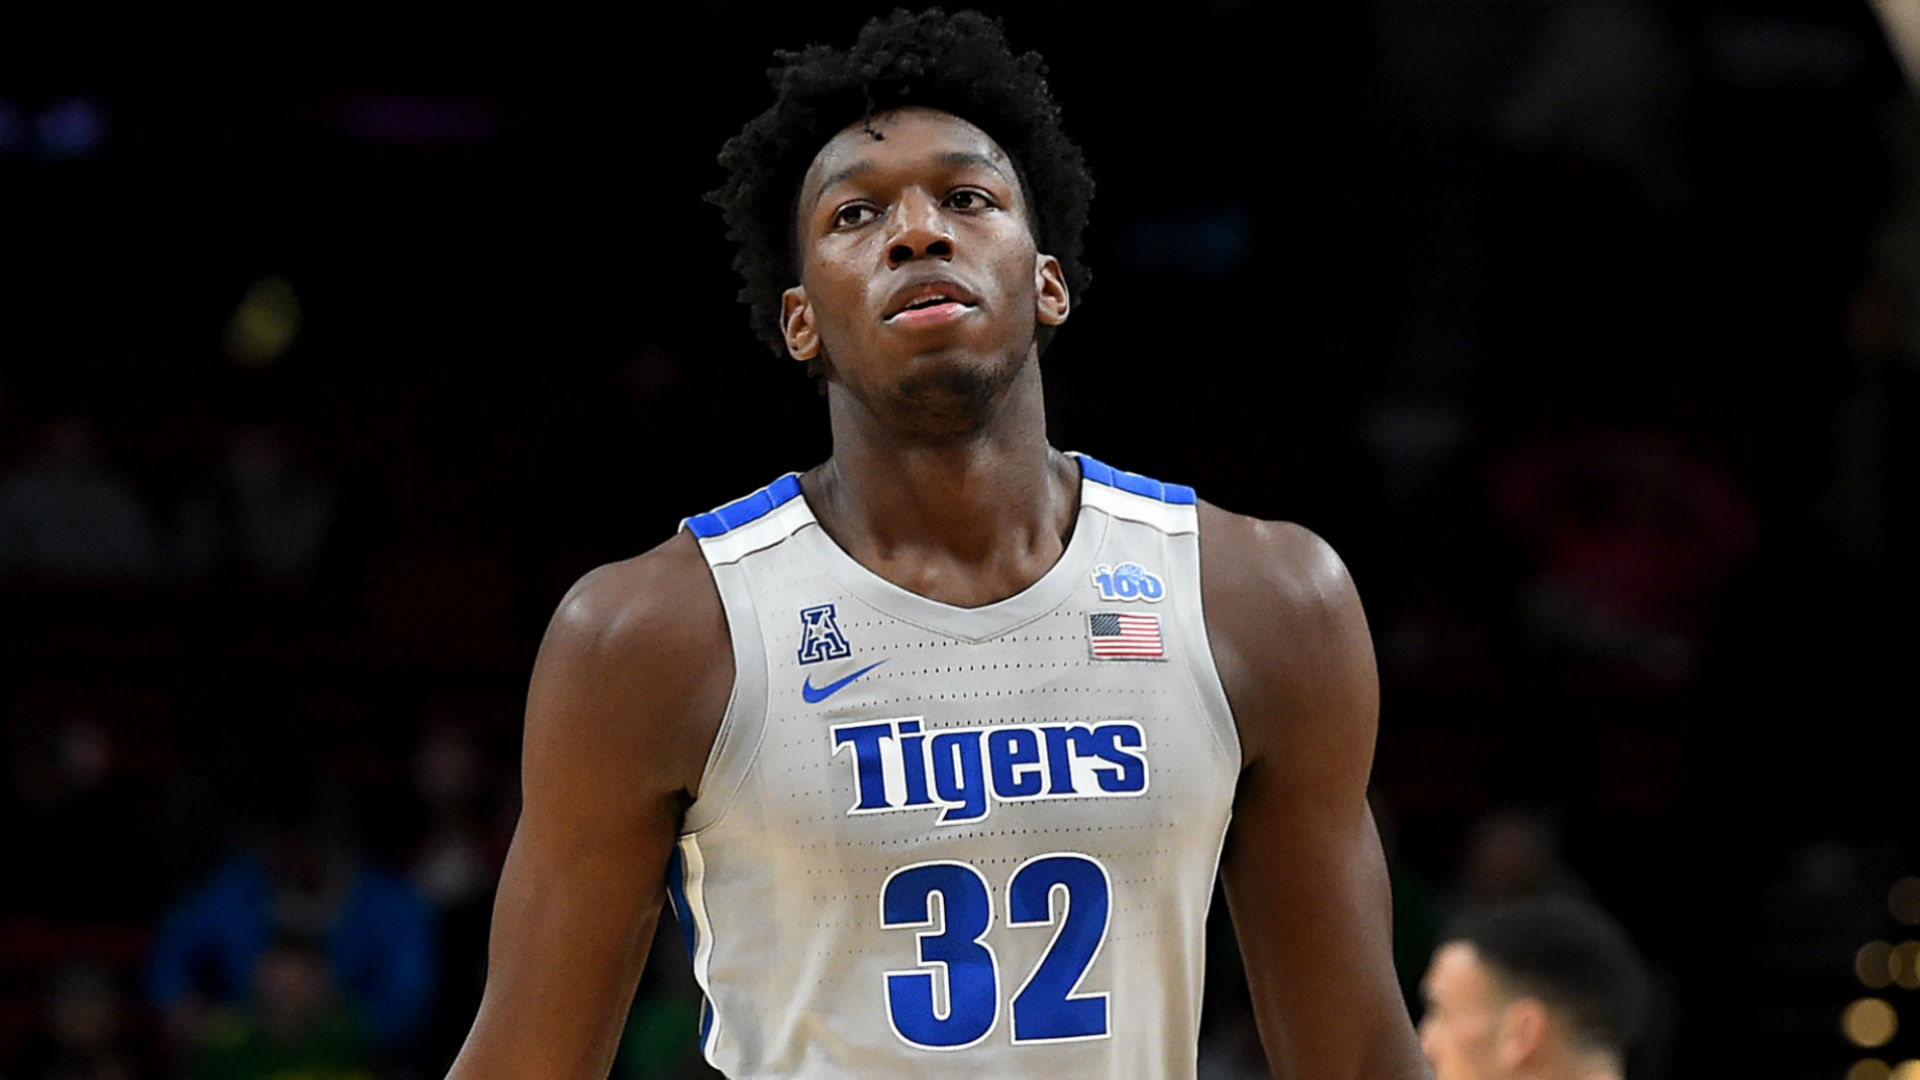 Memphis discovers the cost for fighting NCAA over James Wiseman's eligibility may be exorbitant